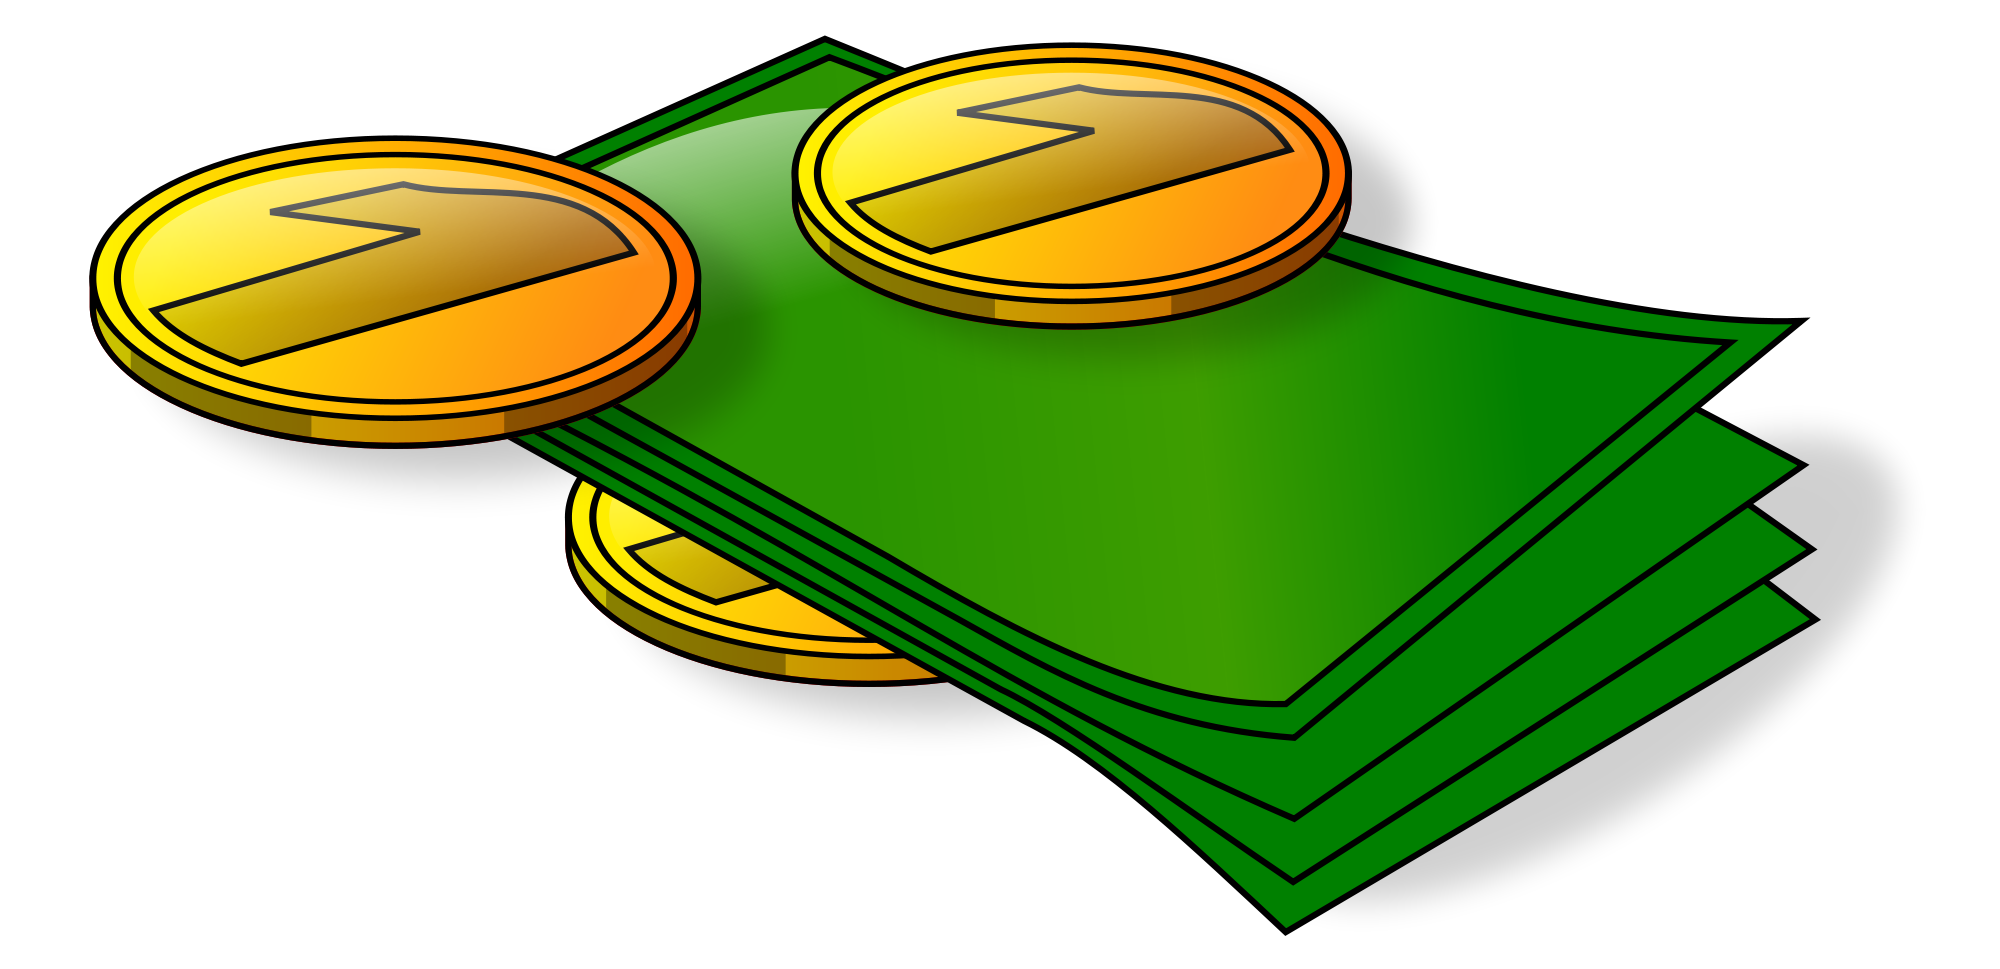 Coin clipart svg. File bills and coins